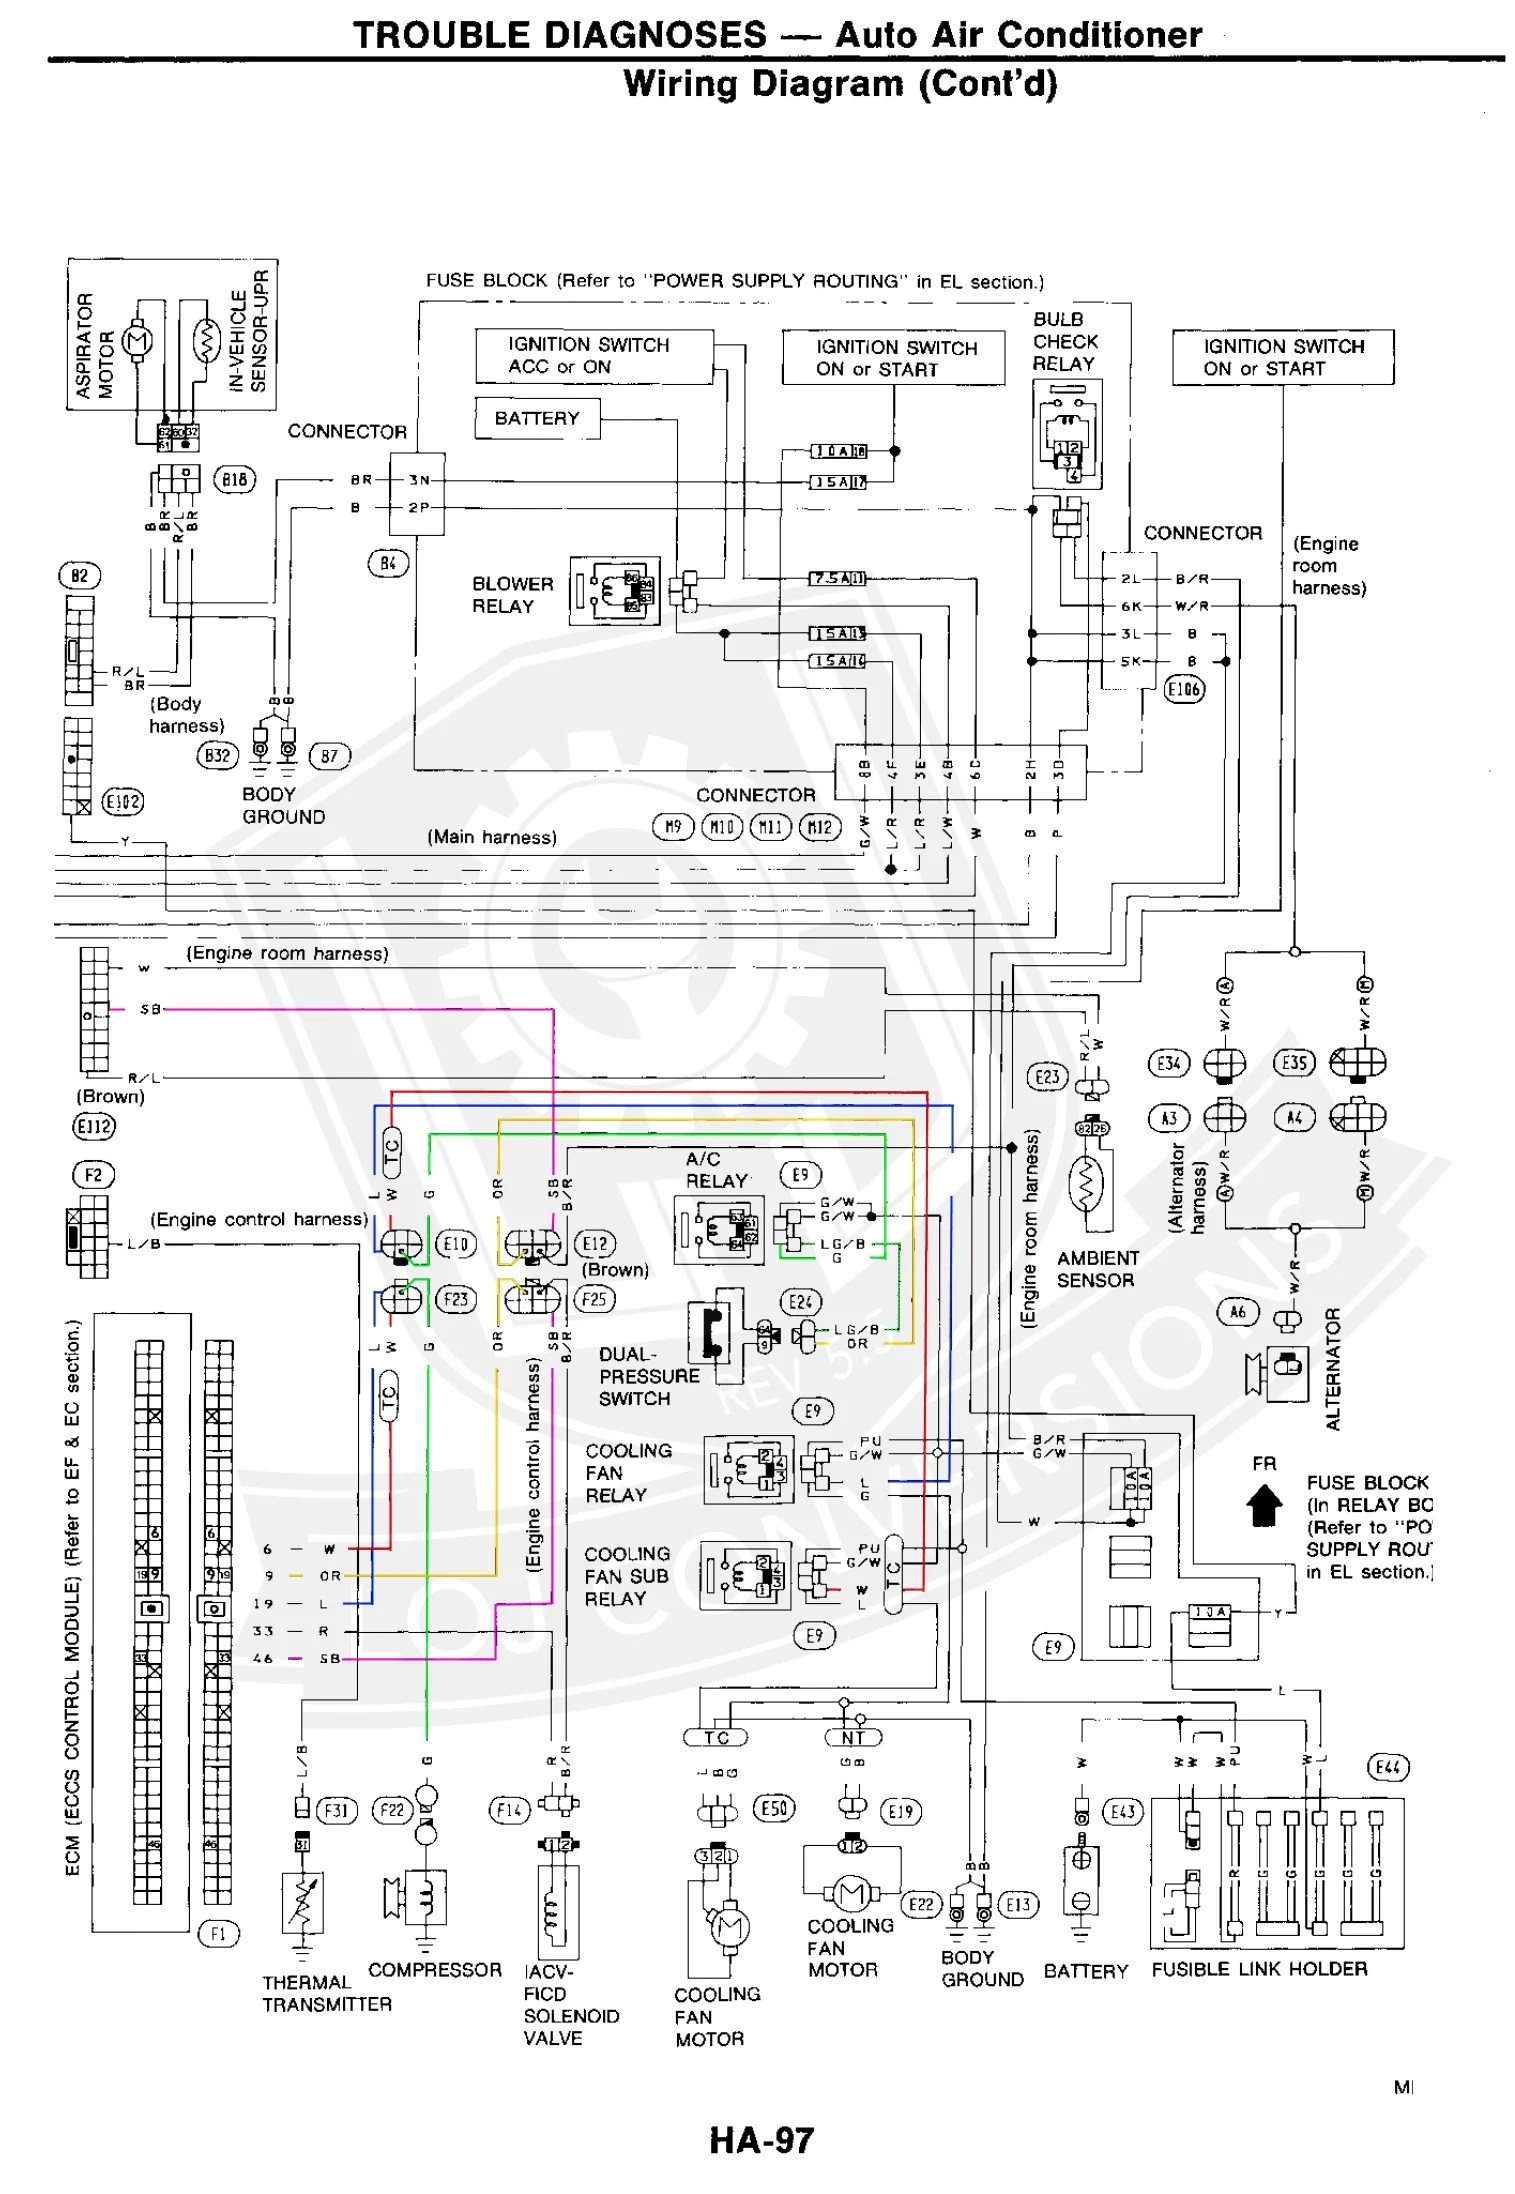 medium resolution of 300zx wire diagram wiring diagram source pioneer harness diagram 300zx wire harness diagram